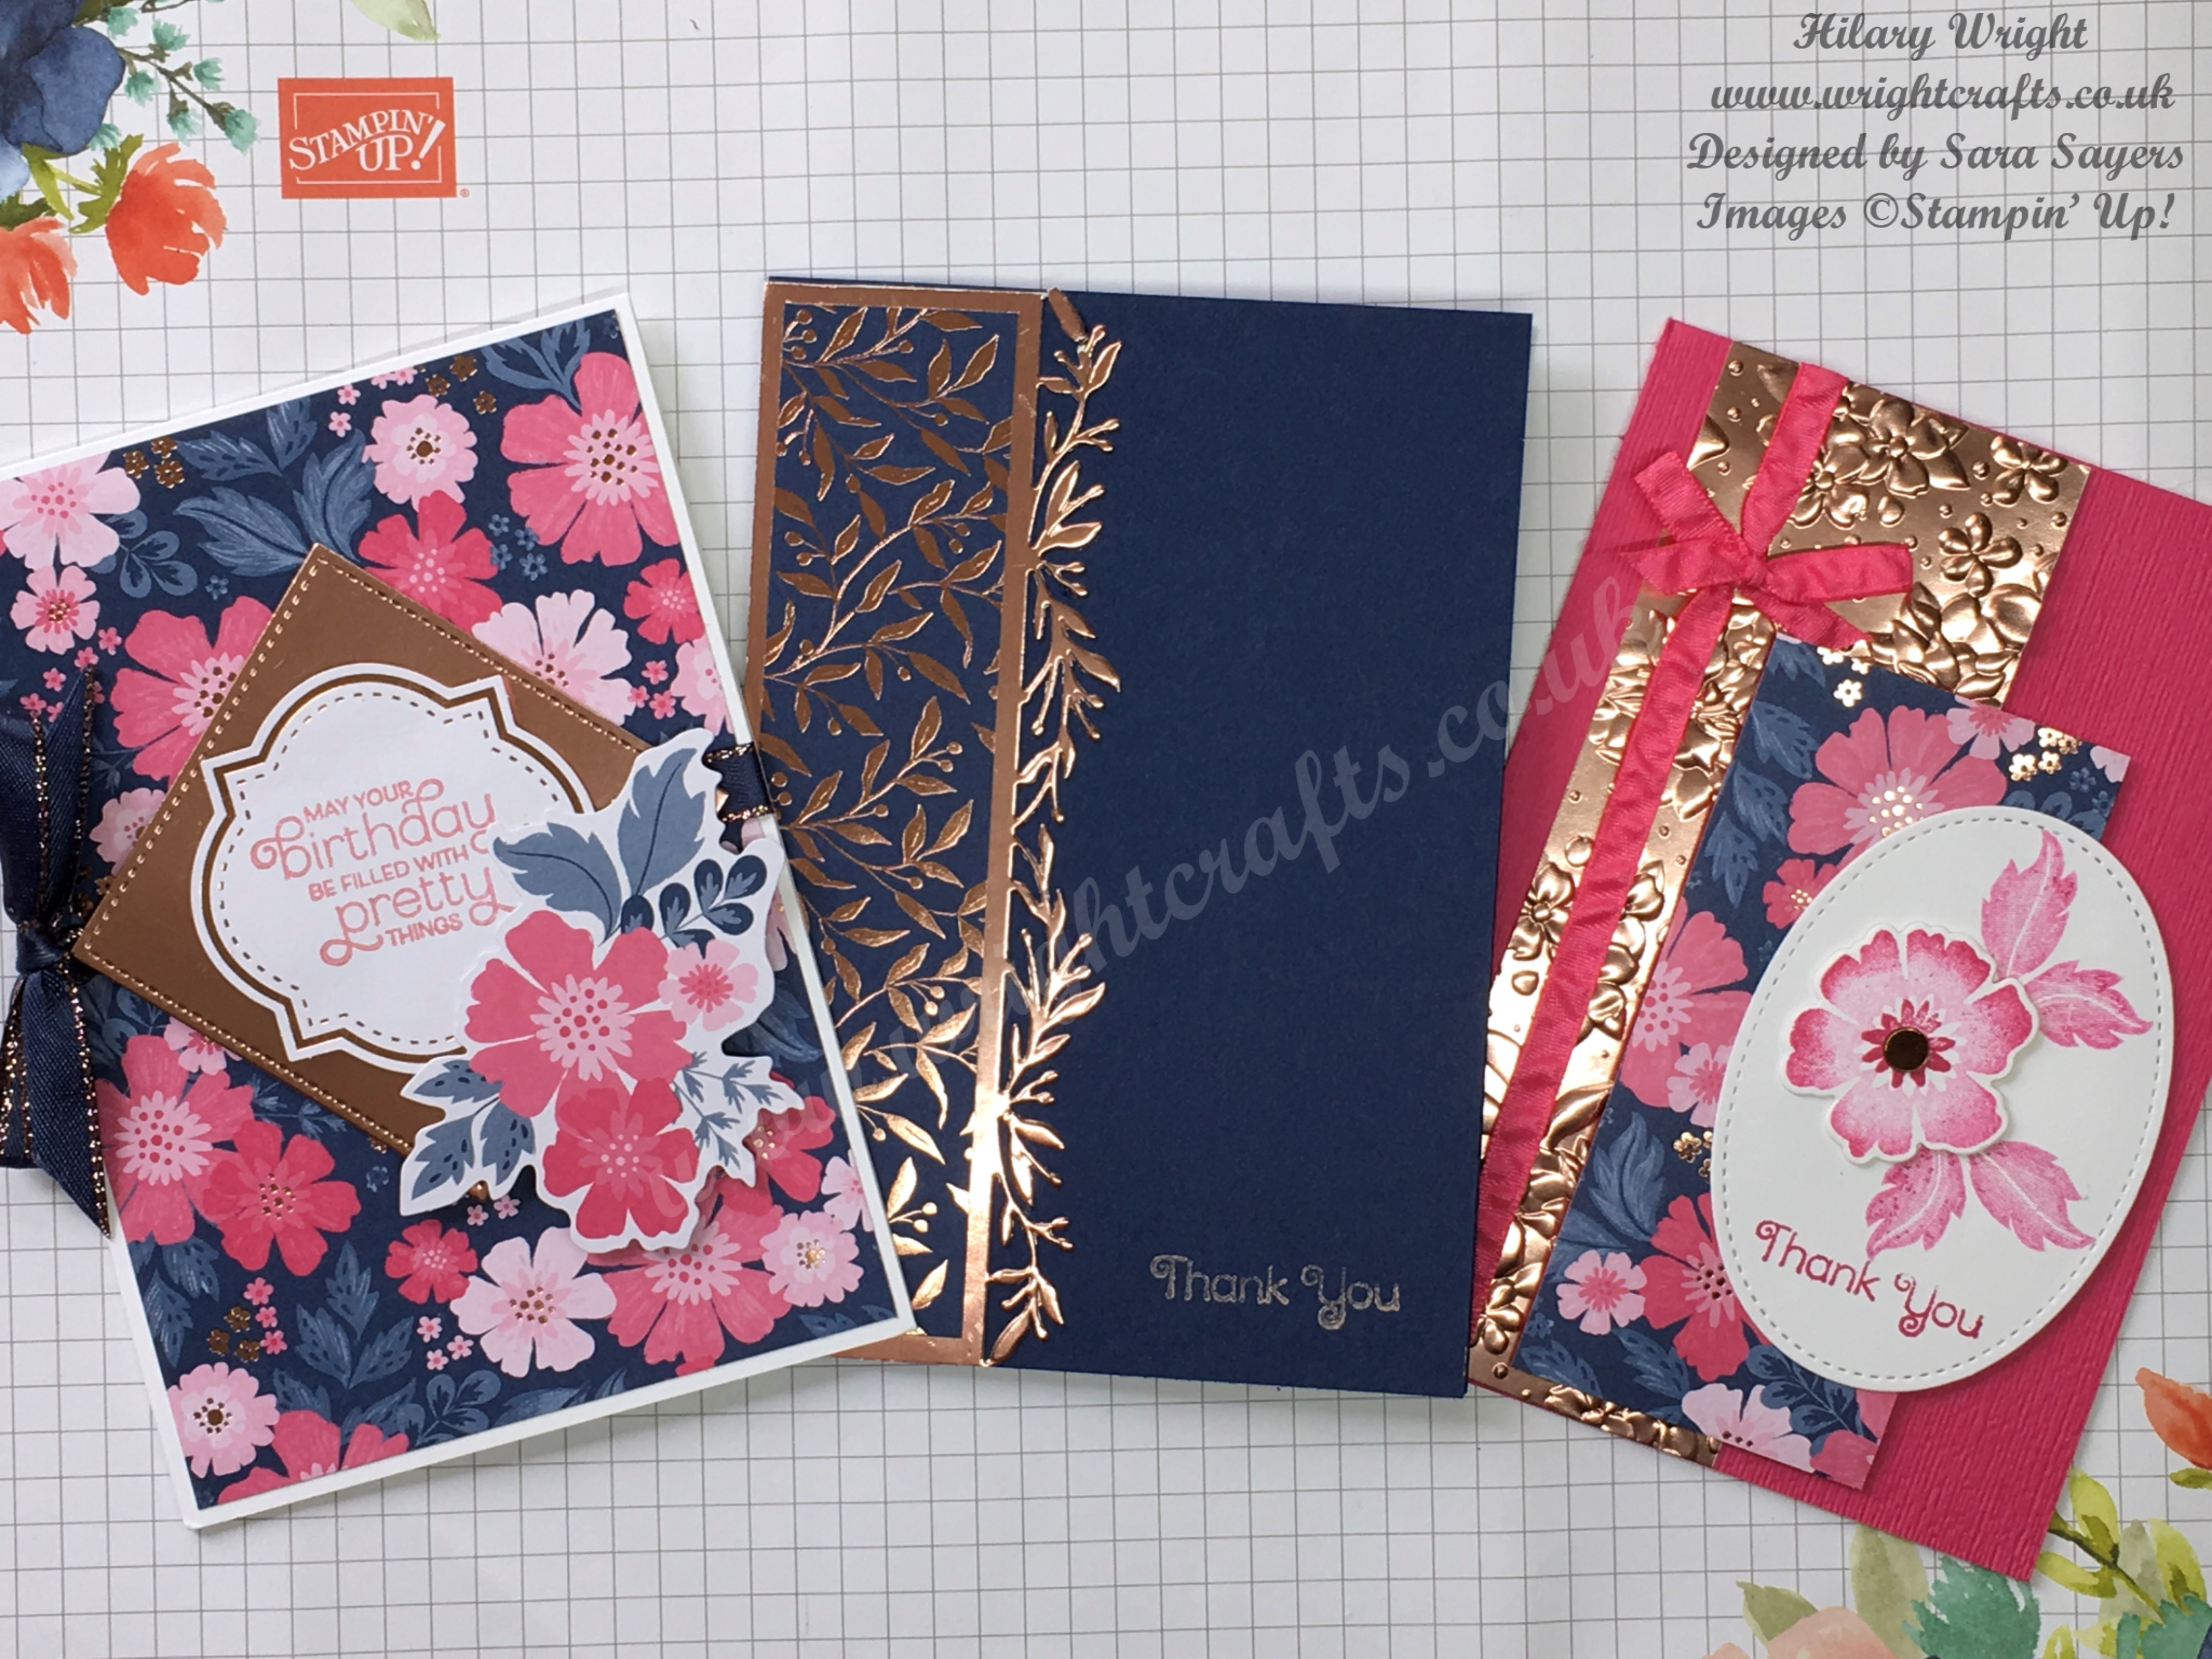 Everything is Rosy - Last chance - Wright Crafts